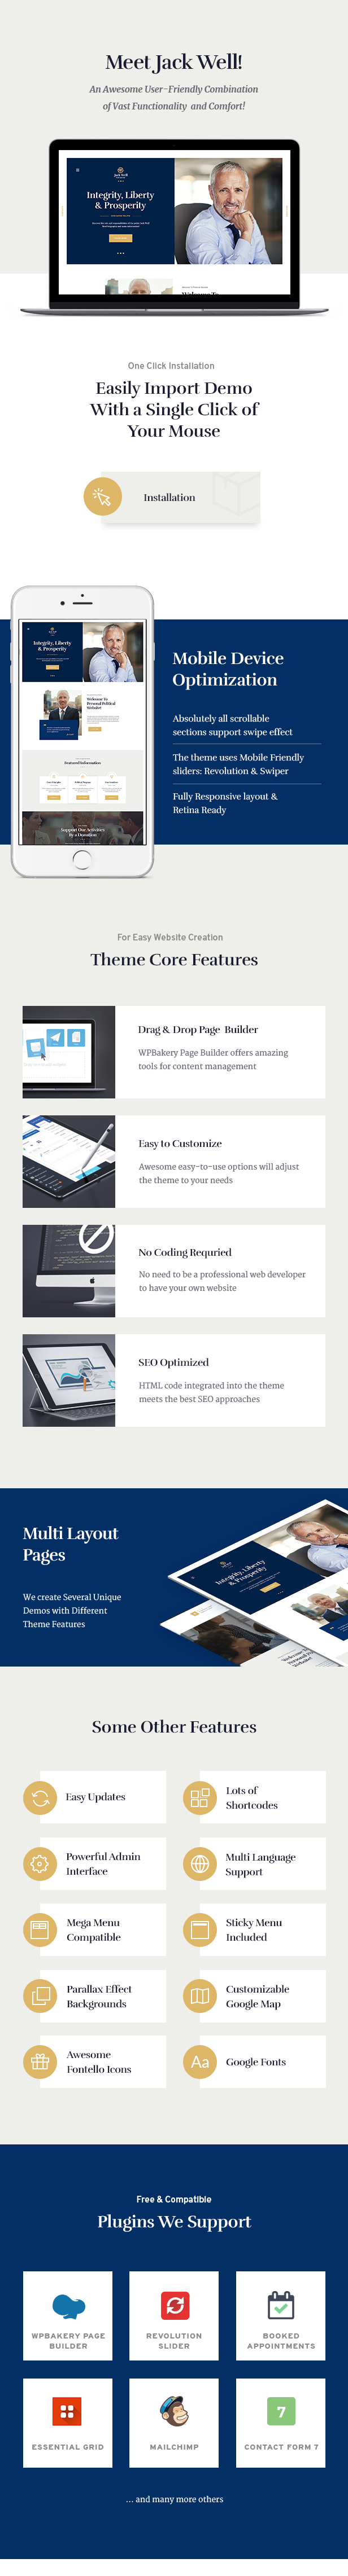 Jack Well | Elections Campaign & Political WordPress Theme - 1